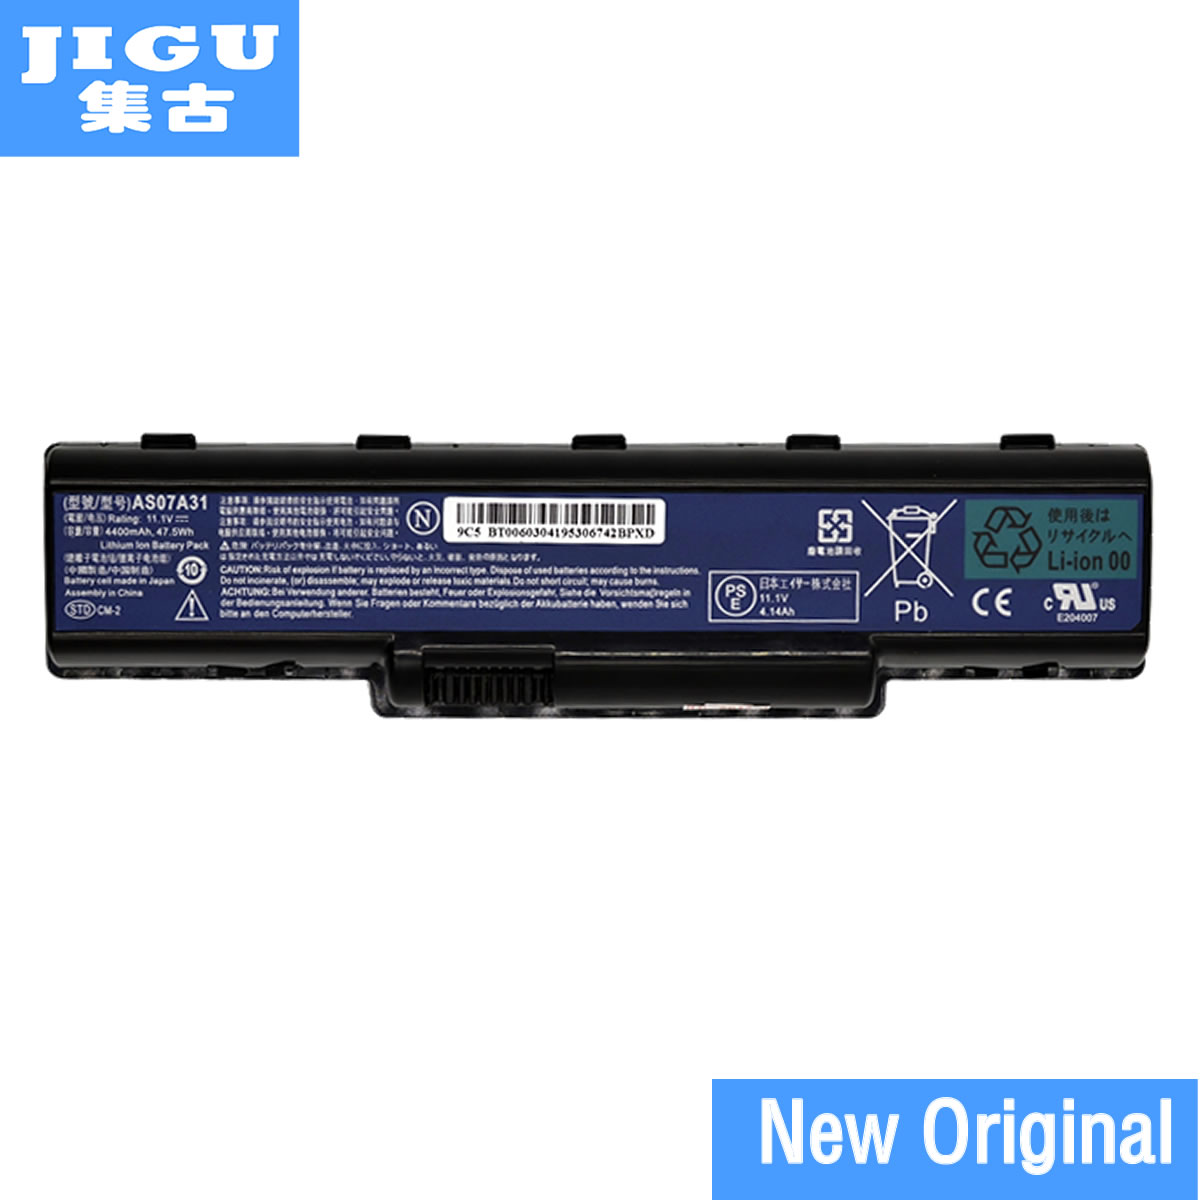 JIGU AS07A31 AS07A32 AS07A41 AS07A42 AS07A51 AS07A52 AS07A71 AS07A72 As07a75 Original Laptop Battery For ACER